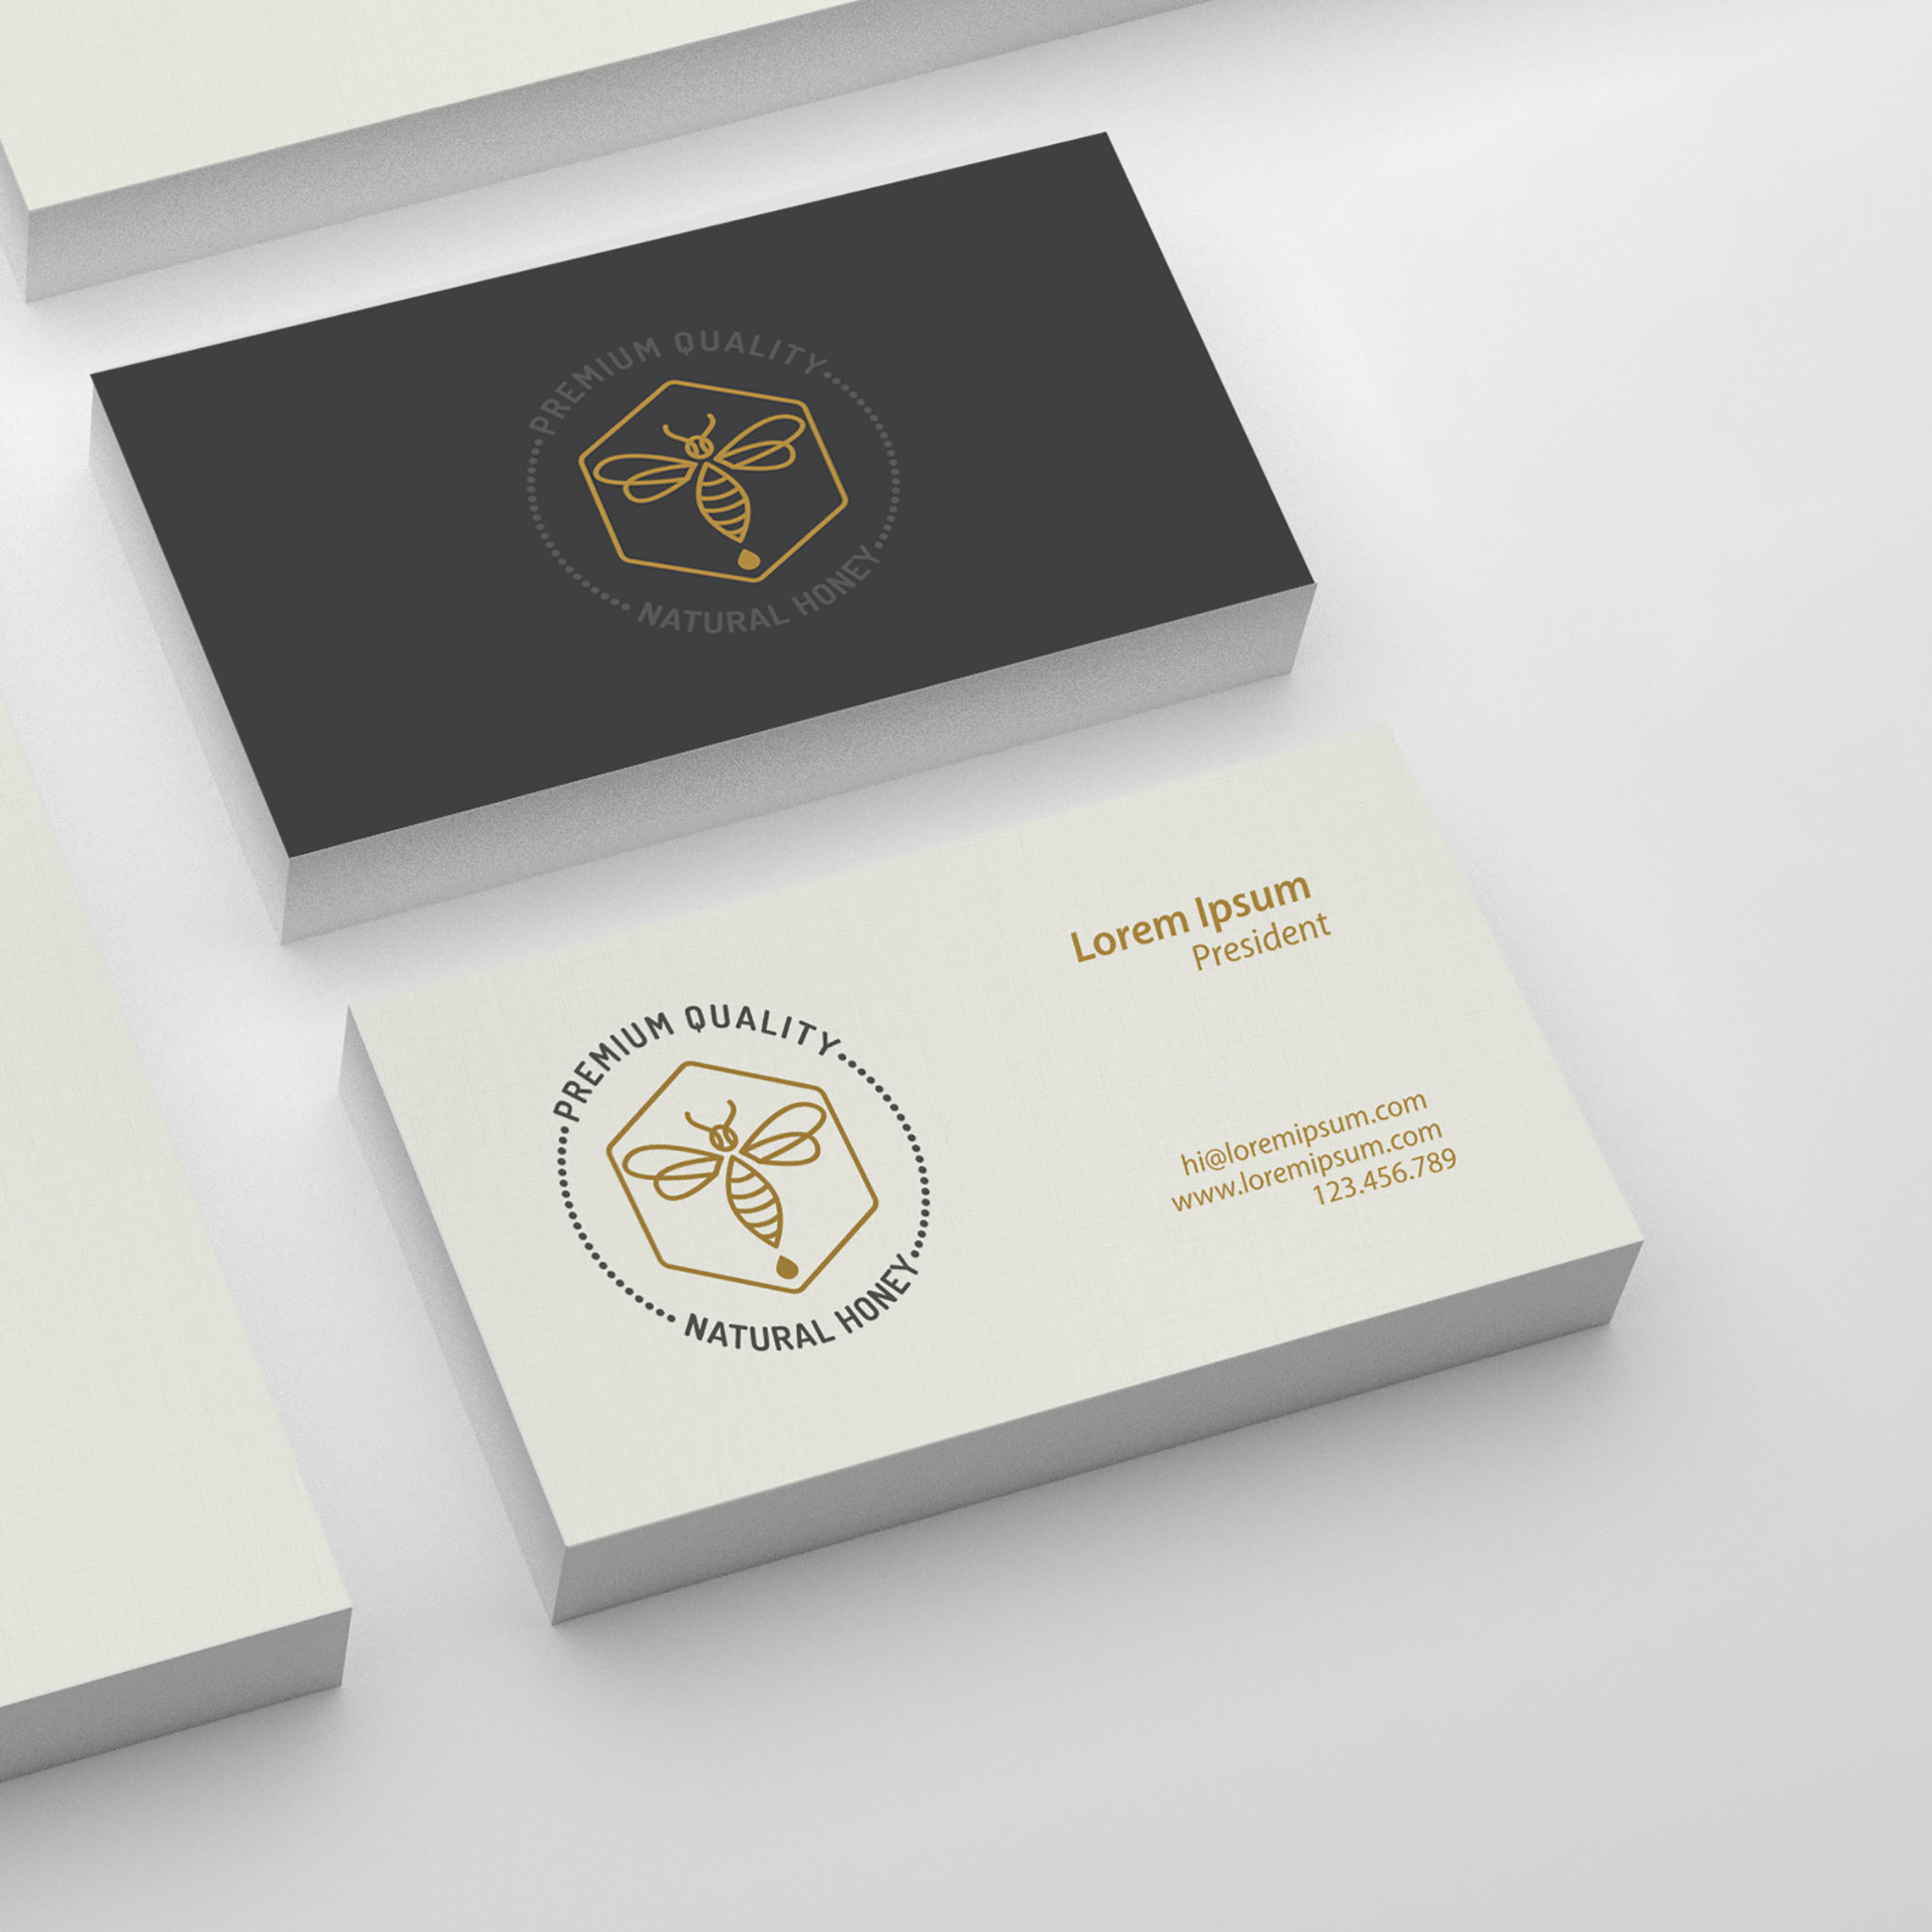 Custom corporate stationery business cards